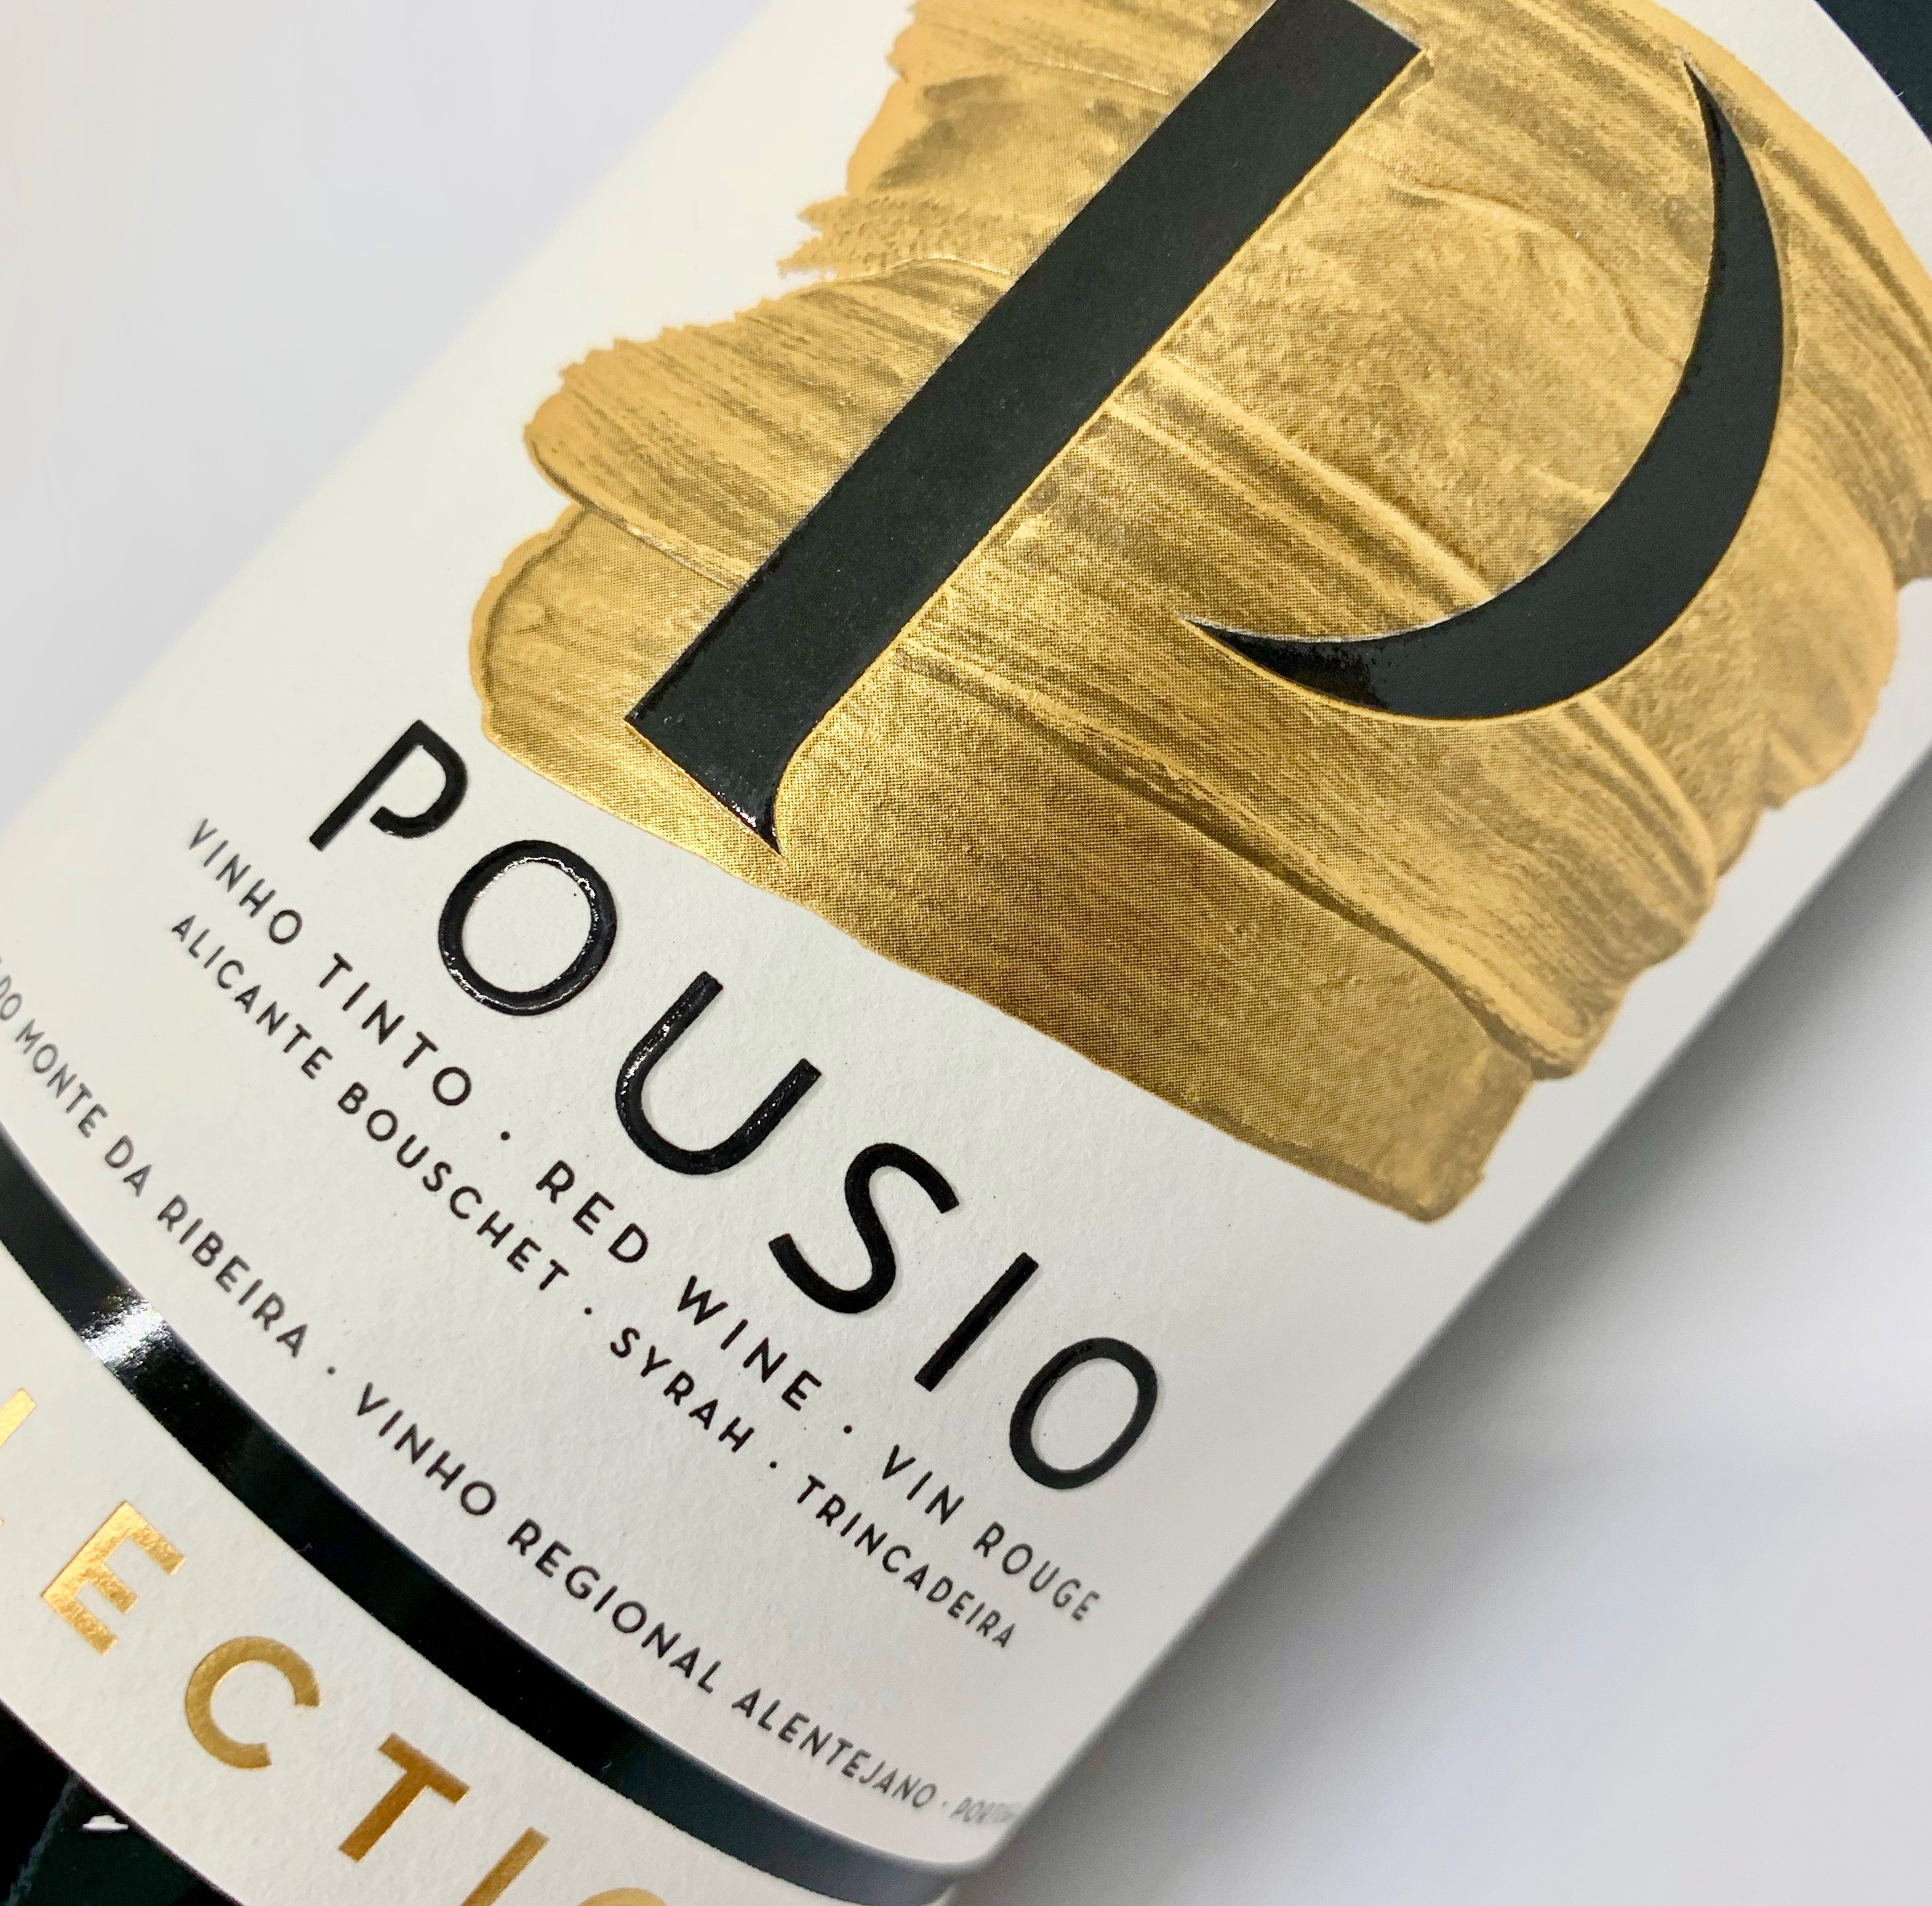 Pousio Selection Red